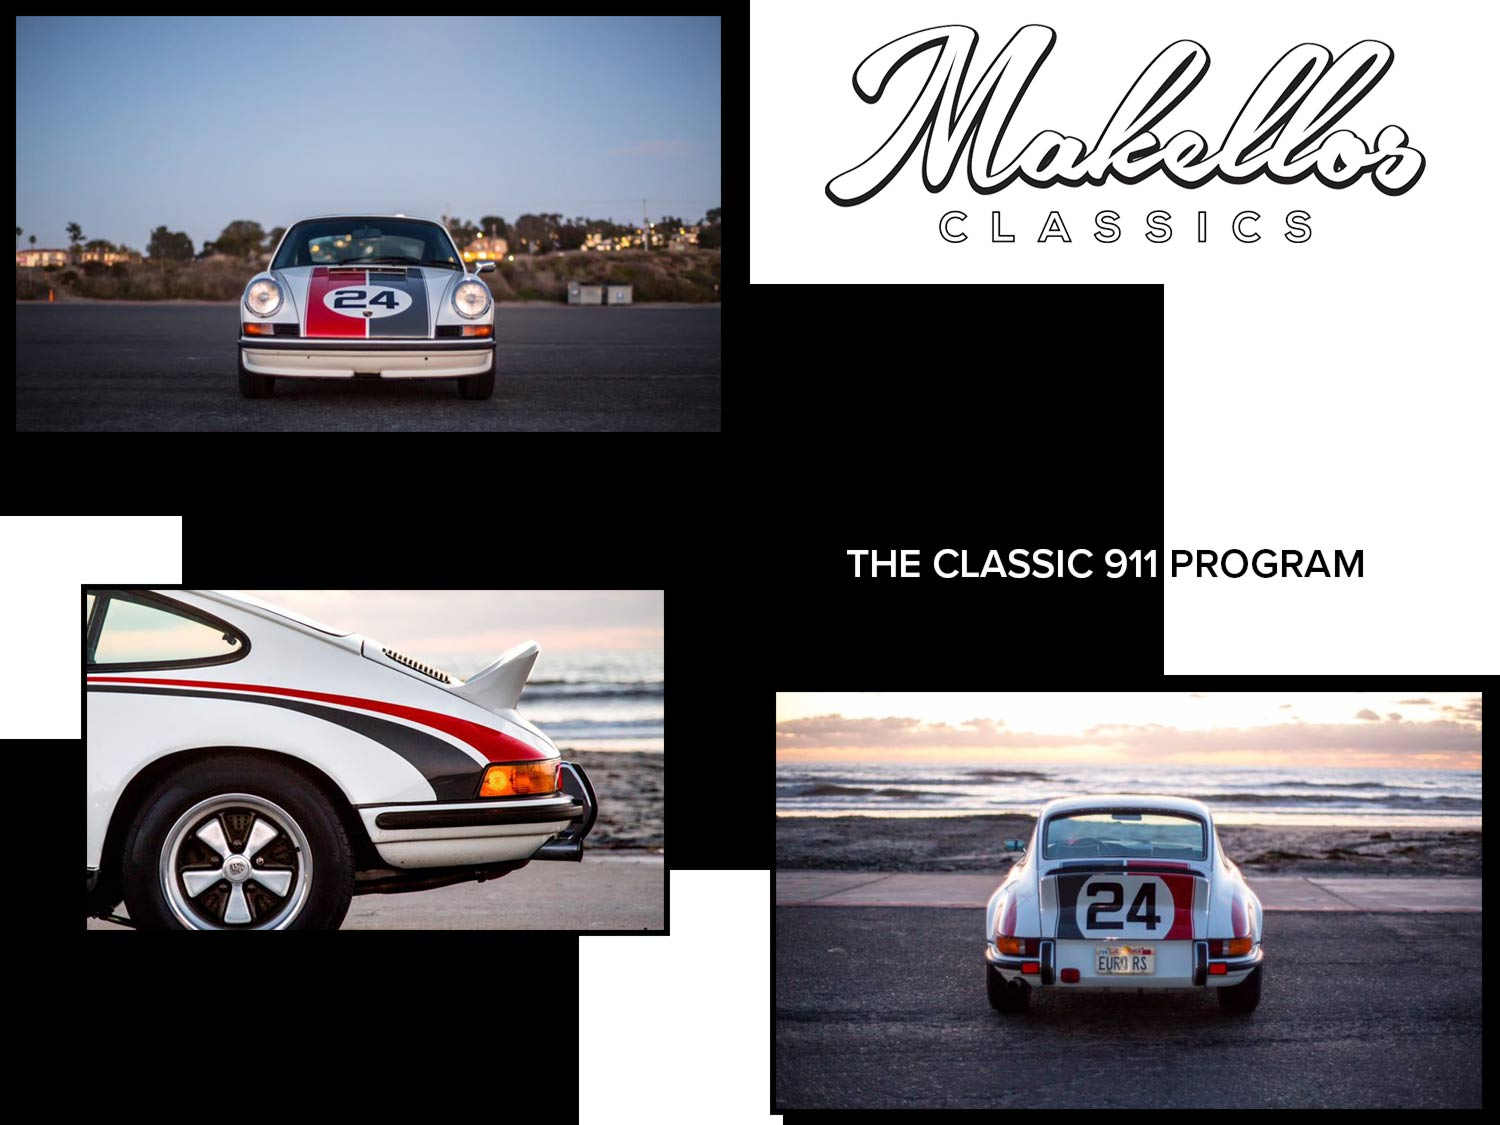 - The Classic 911 Program is for those seeking to add elements of modern convenience while maintaining the integrity and originality of their classic Porsche.